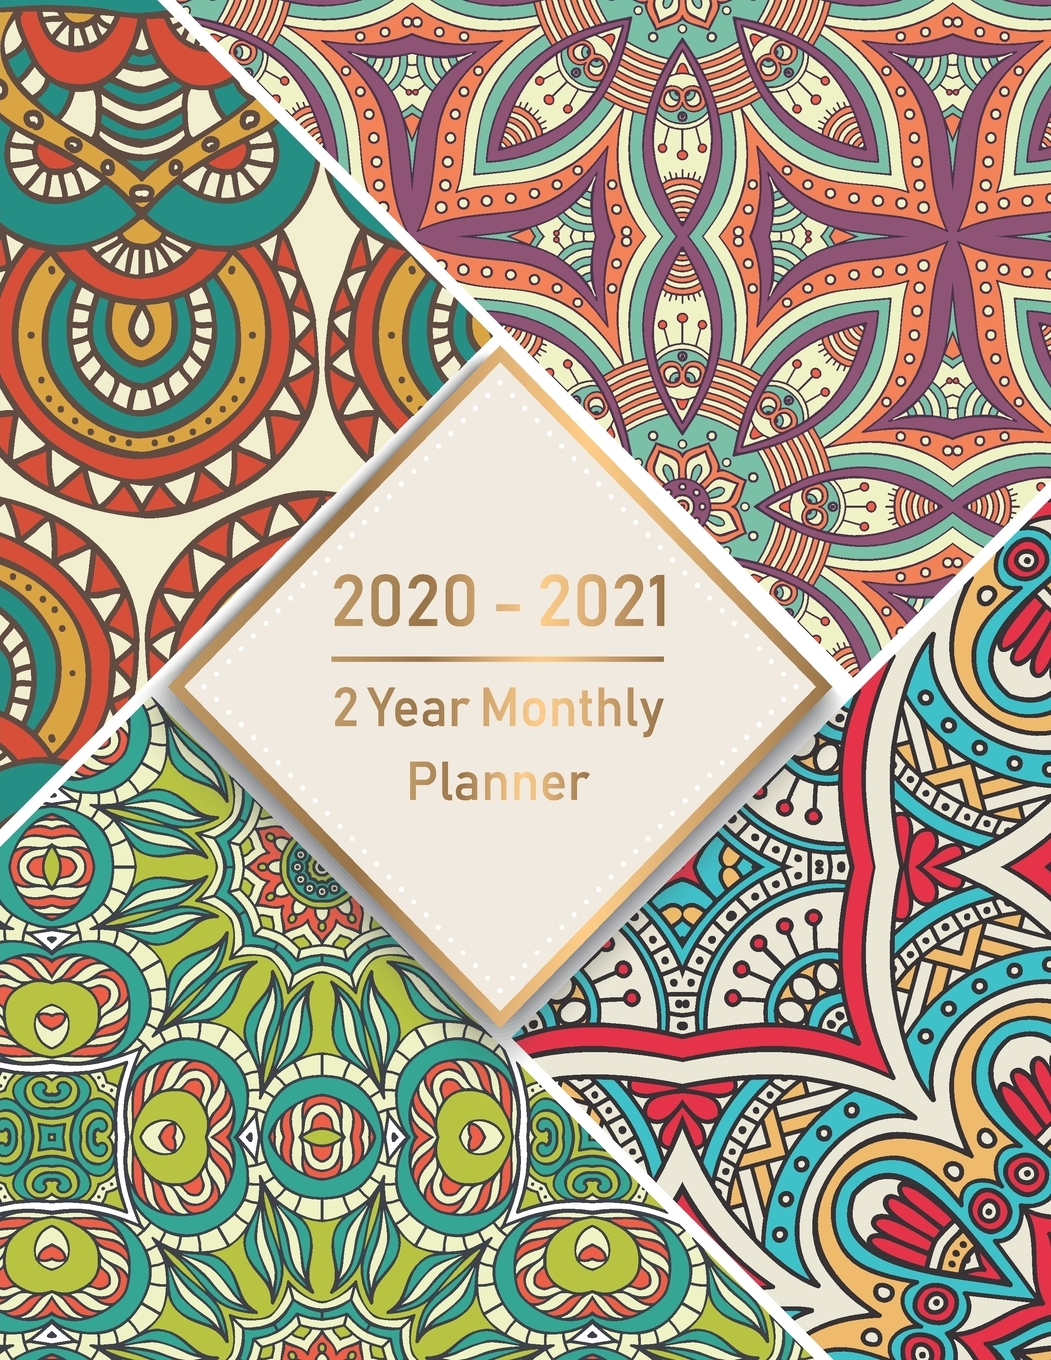 2020-2021 Monthly Planner: 2 Year Monthly Planner 2020-2021: Monthly  Schedule Organizer, Agenda Planner For The Next Two Years, 24 Months  Calendar,